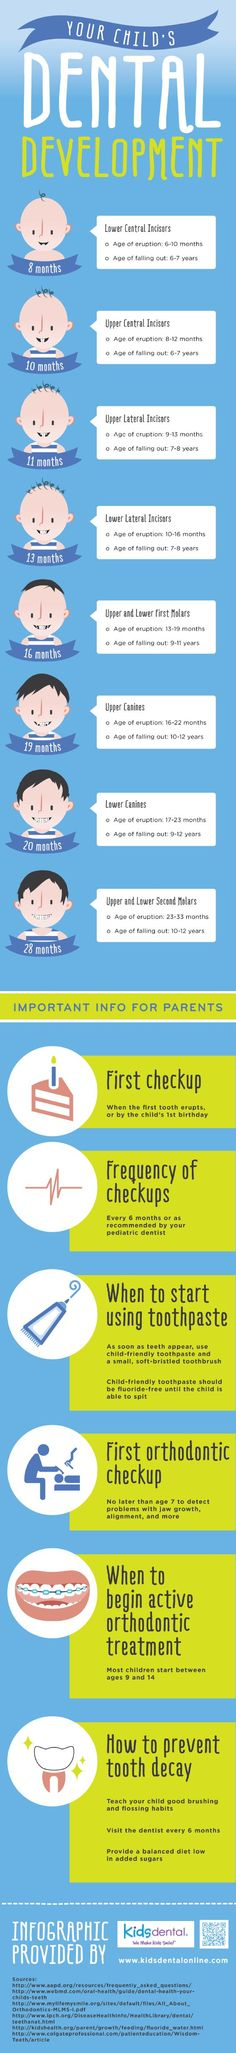 Children's central incisors typically erupt between 8 and 12 months of age. These teeth tend to fall out when children are around 6 or 7 years old. Discover other facts about children's teeth by viewing this infographic from a kids' dentist in Carrollton.